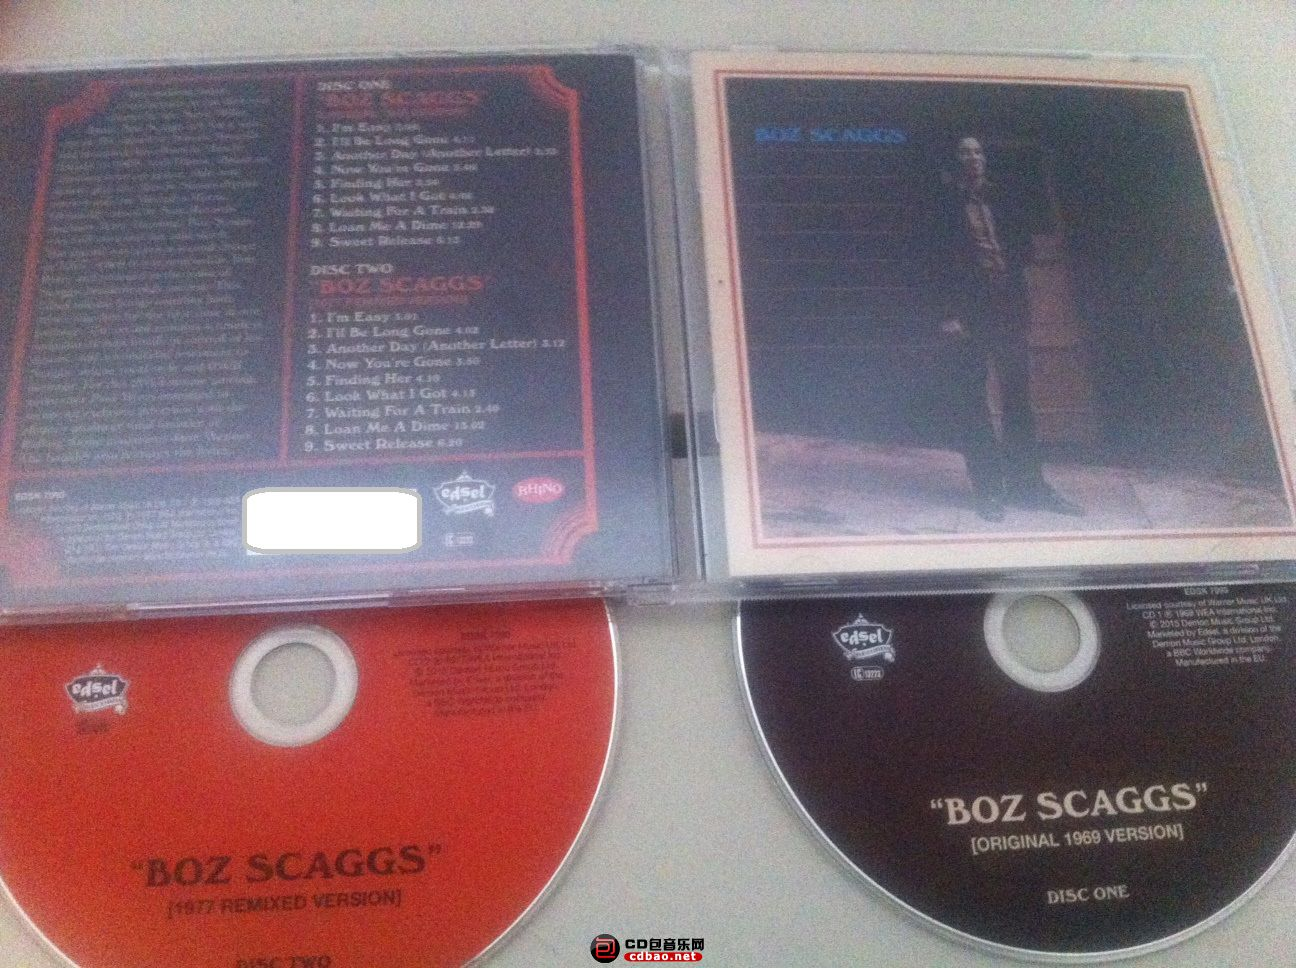 000-boz_scaggs-boz_scaggs-(deluxe_edition)-2cd-2015-(proof).jpg